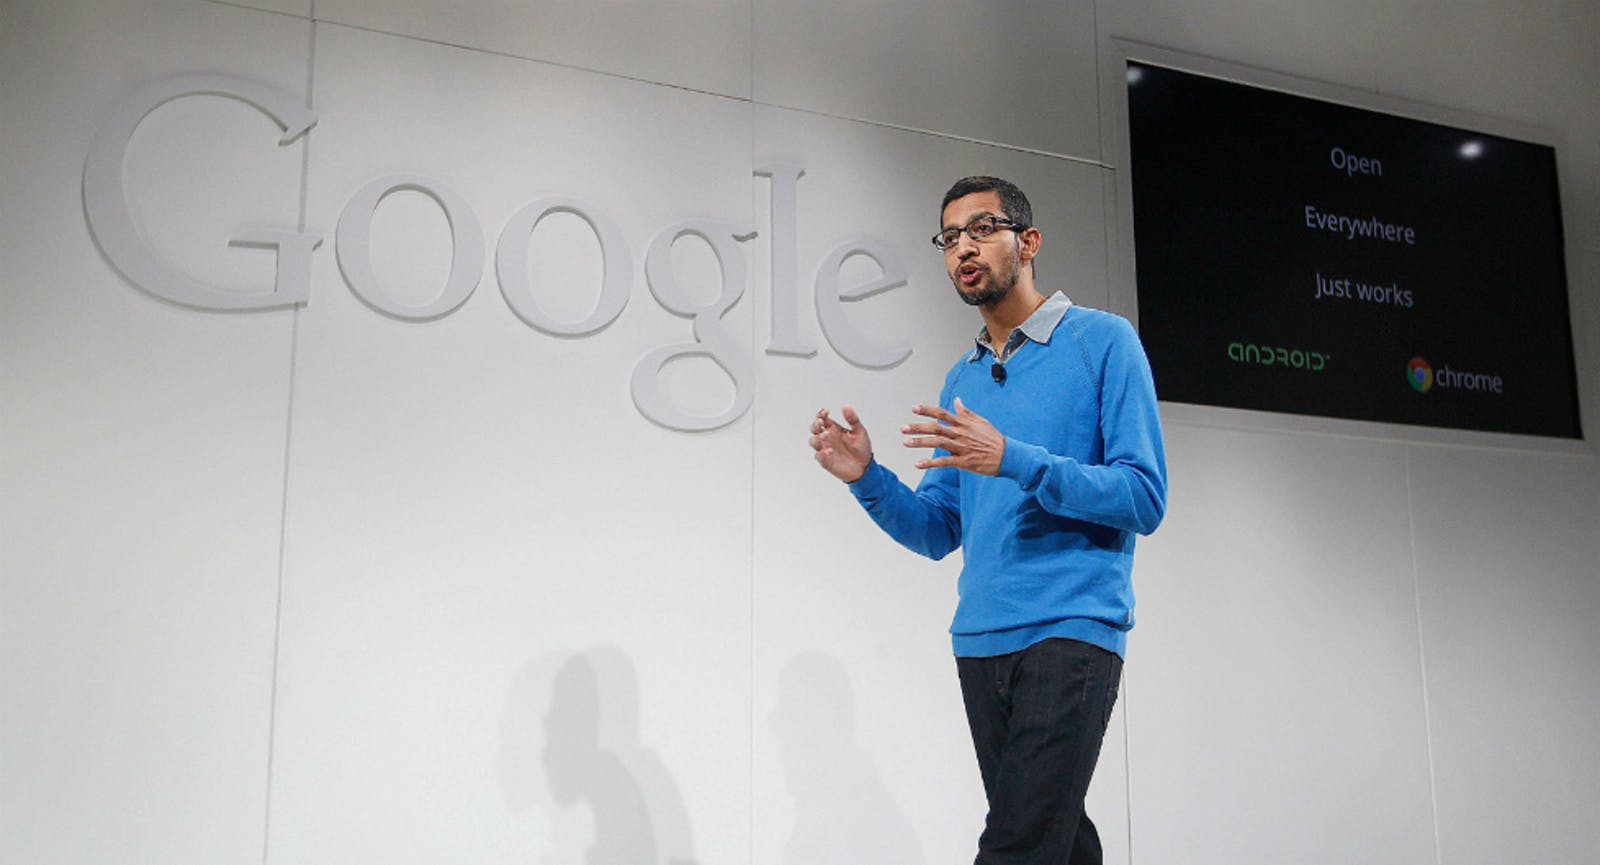 Sundar Pichai, head of Android. Photo by Bloomberg.